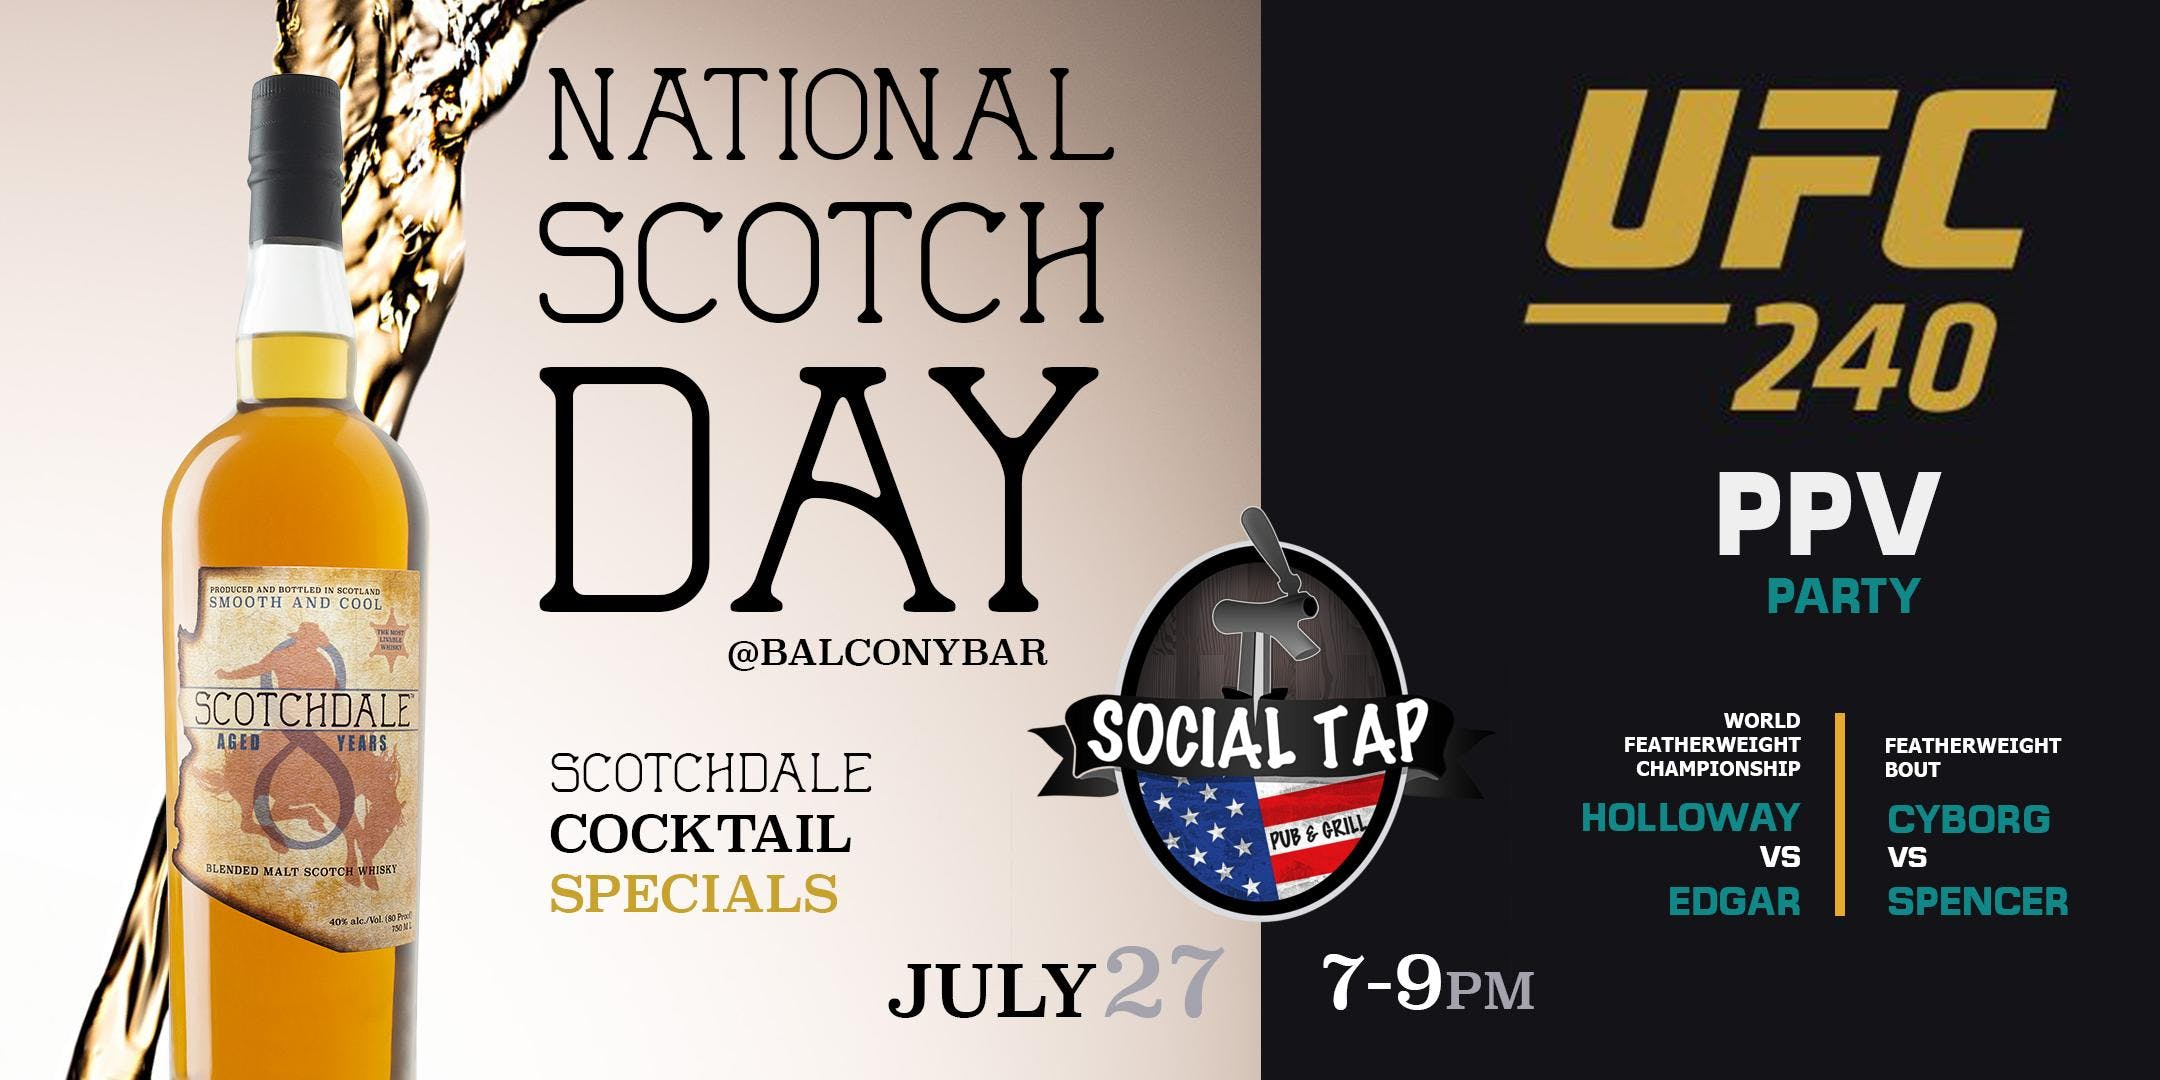 National Scotch Day presented by Scotchdale